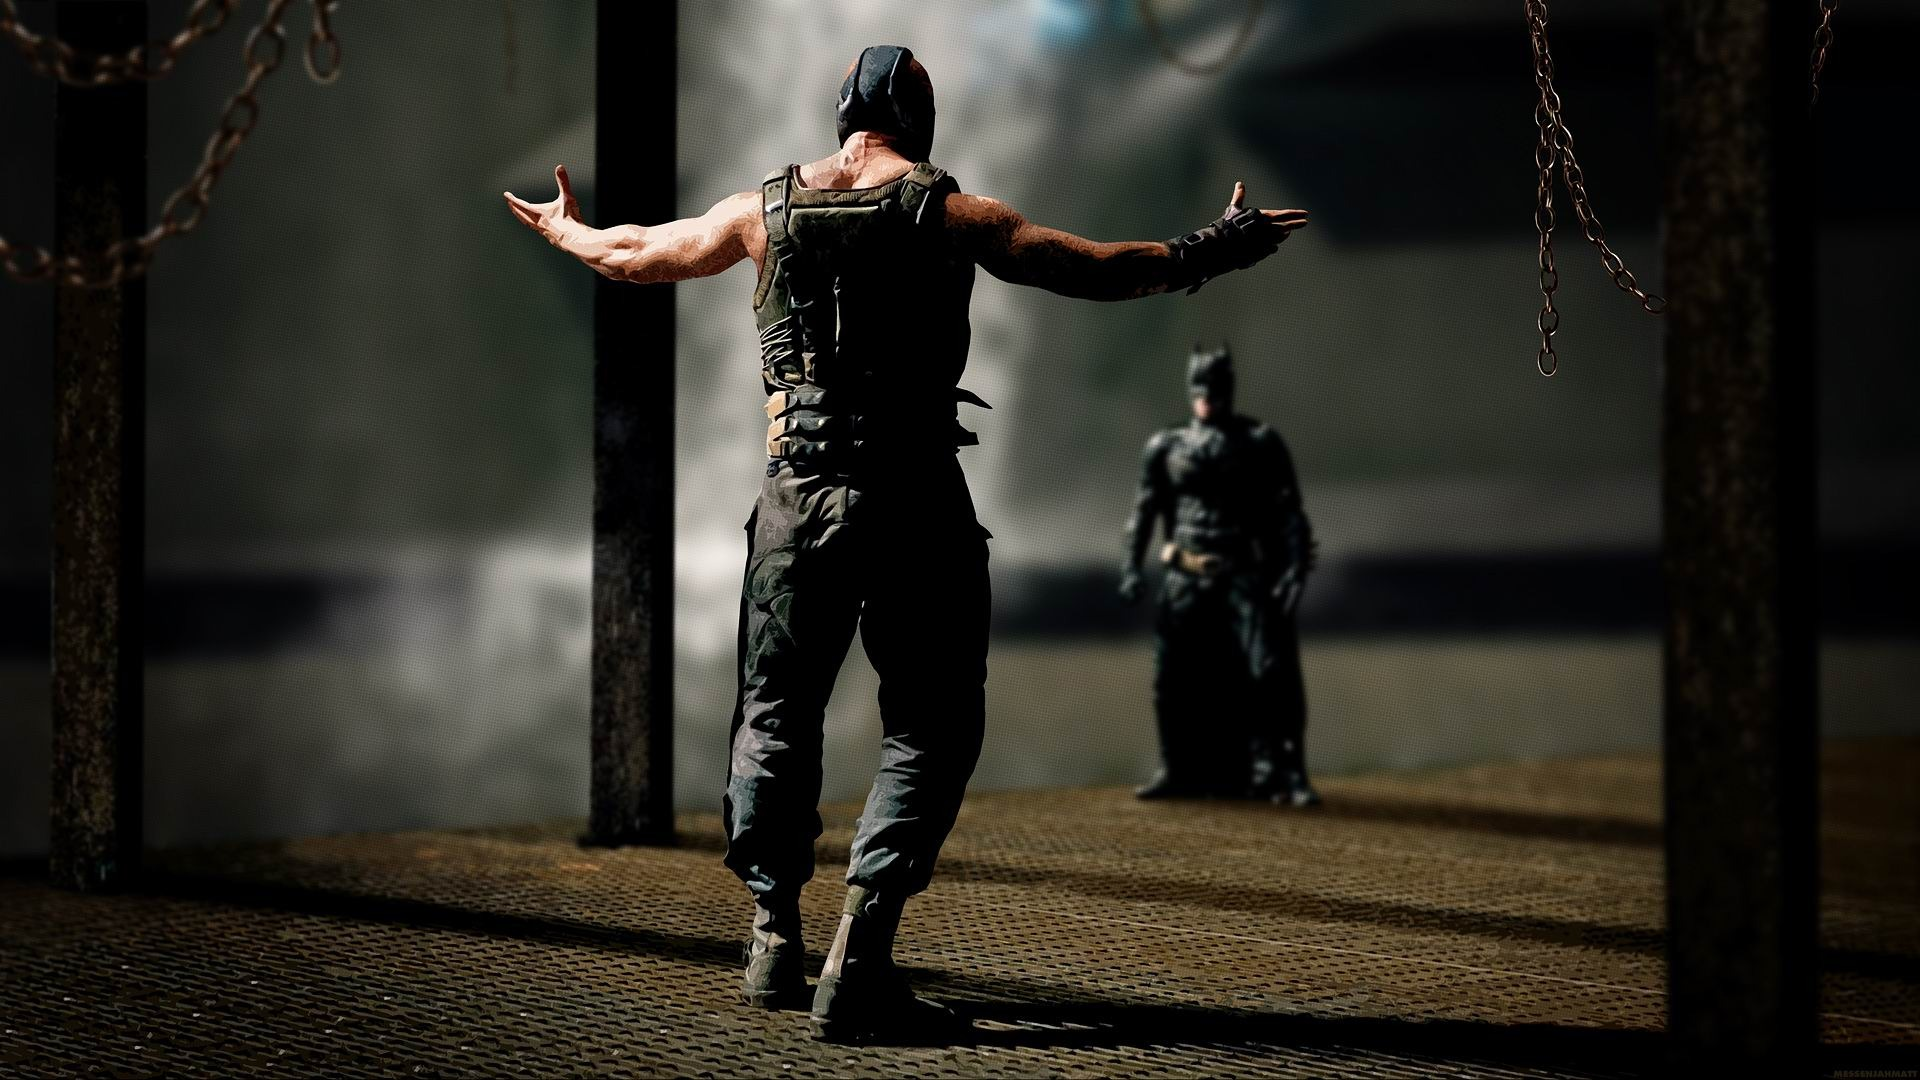 The Dark Knight Rises 2012 Movie Hd Wallpaper 16 Preview